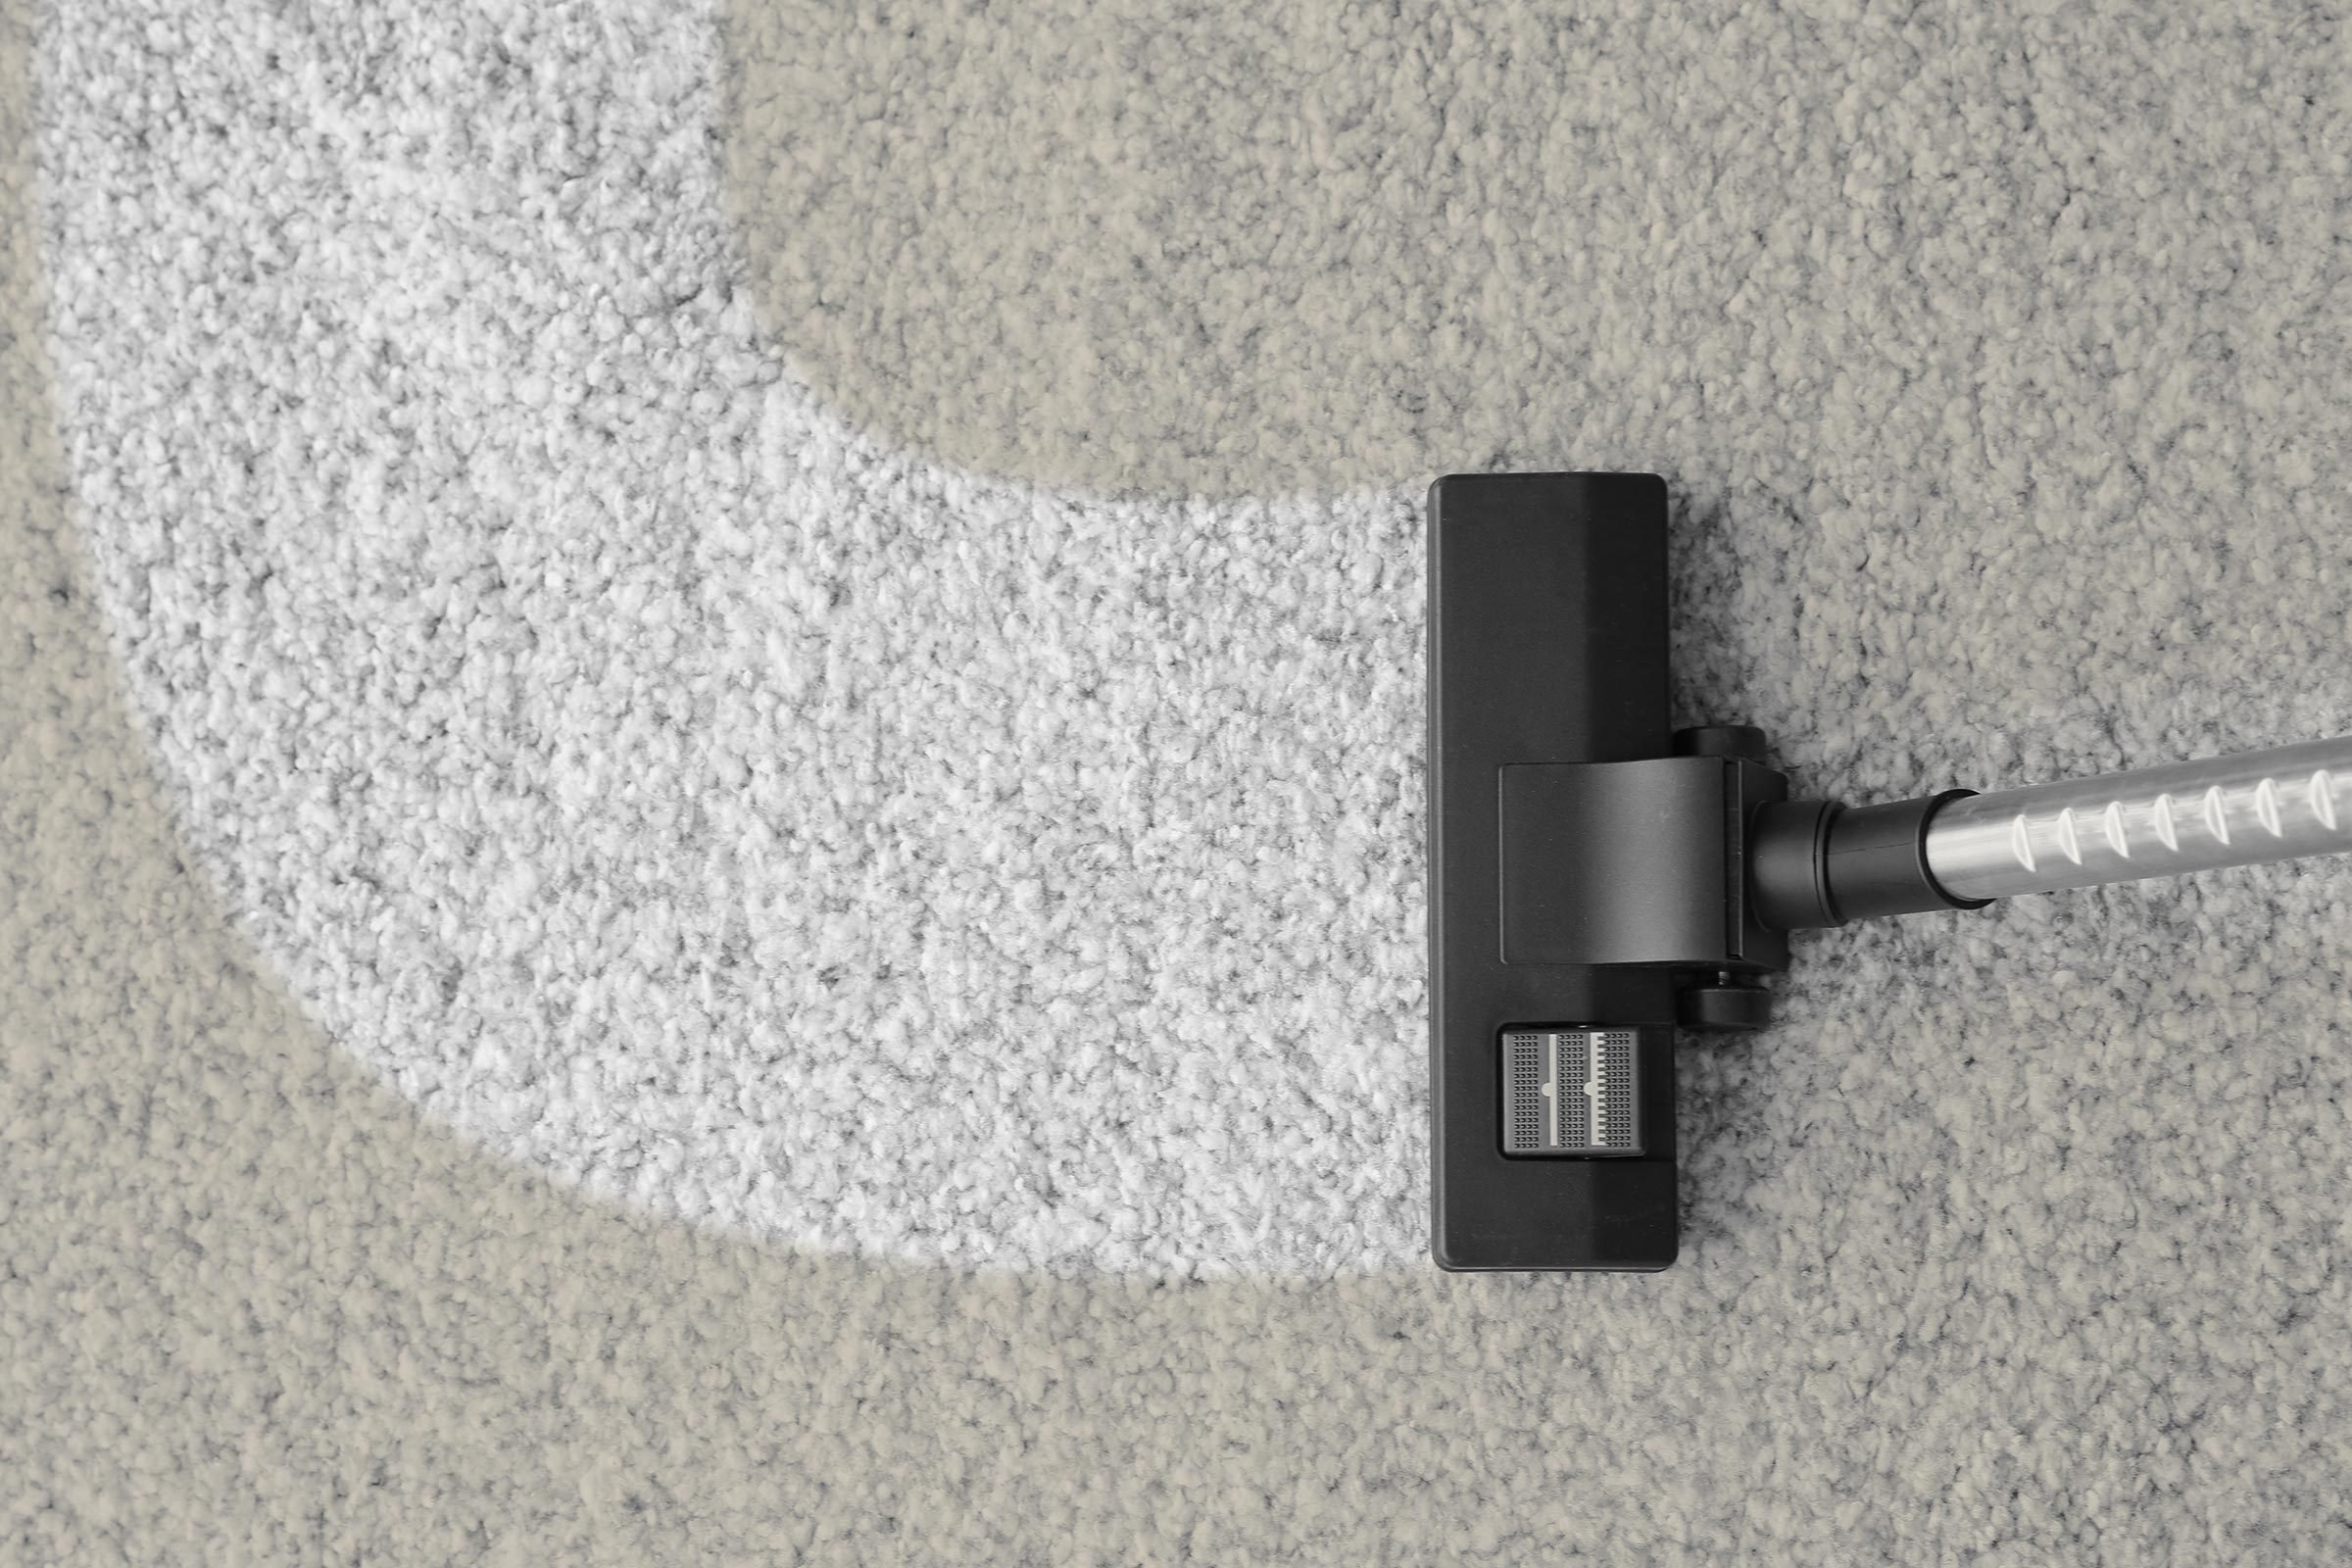 Vacuum cleaner removing dirt from carpet